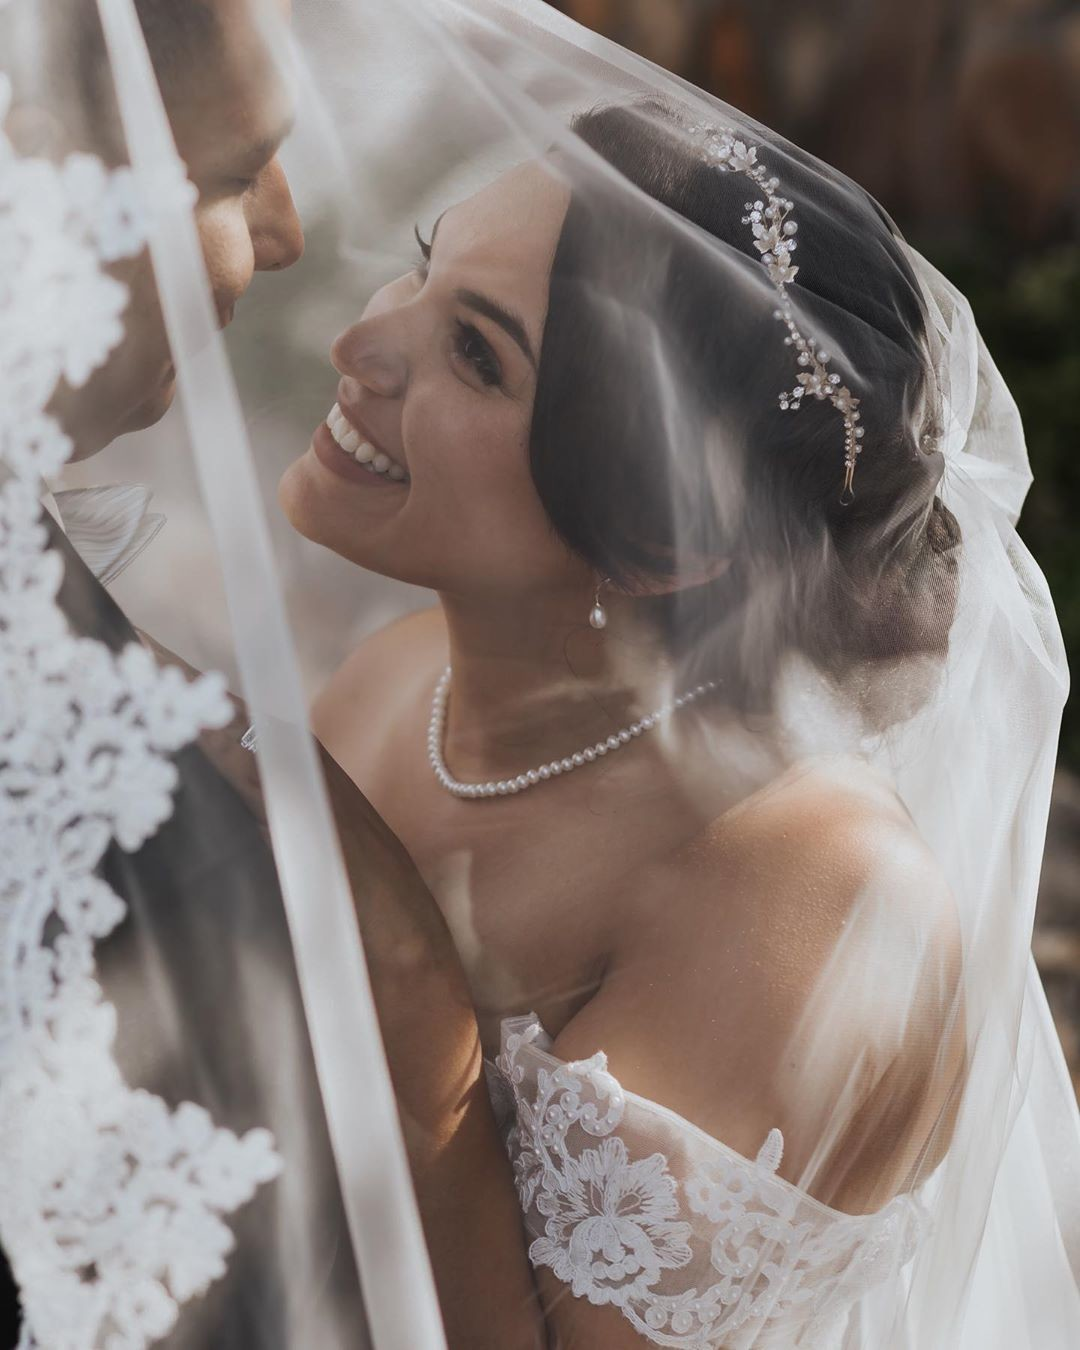 One of the many reasons why we love adding a veil to your wedding day look! 👰